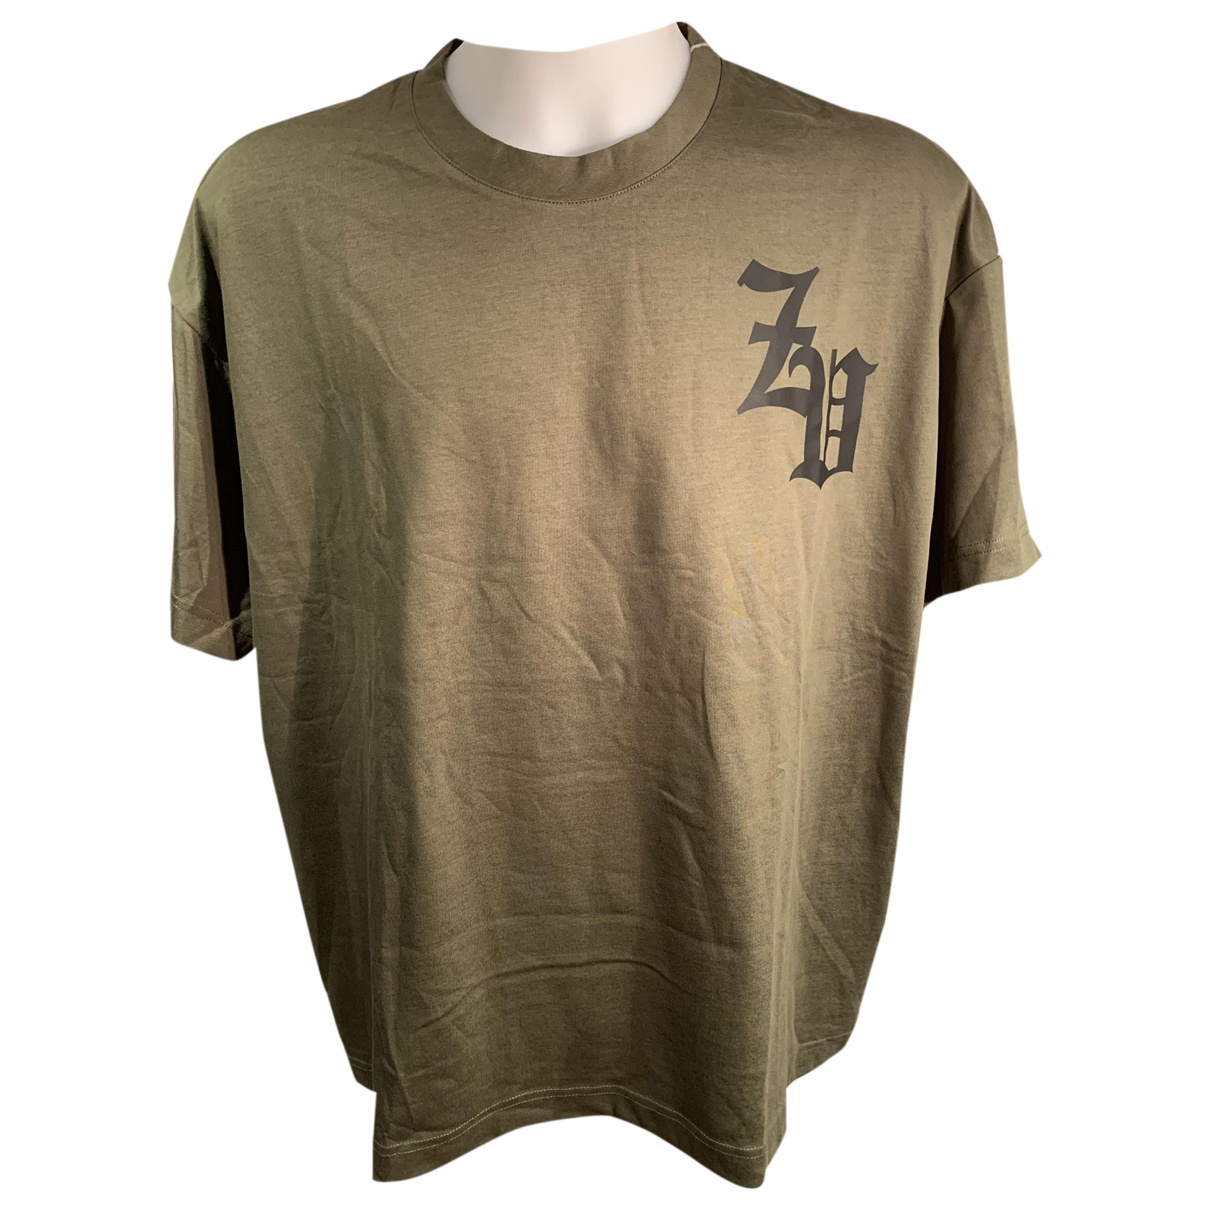 Zadig & Voltaire Spring Summer 2019 Khaki Cotton T-shirts for Men XL International